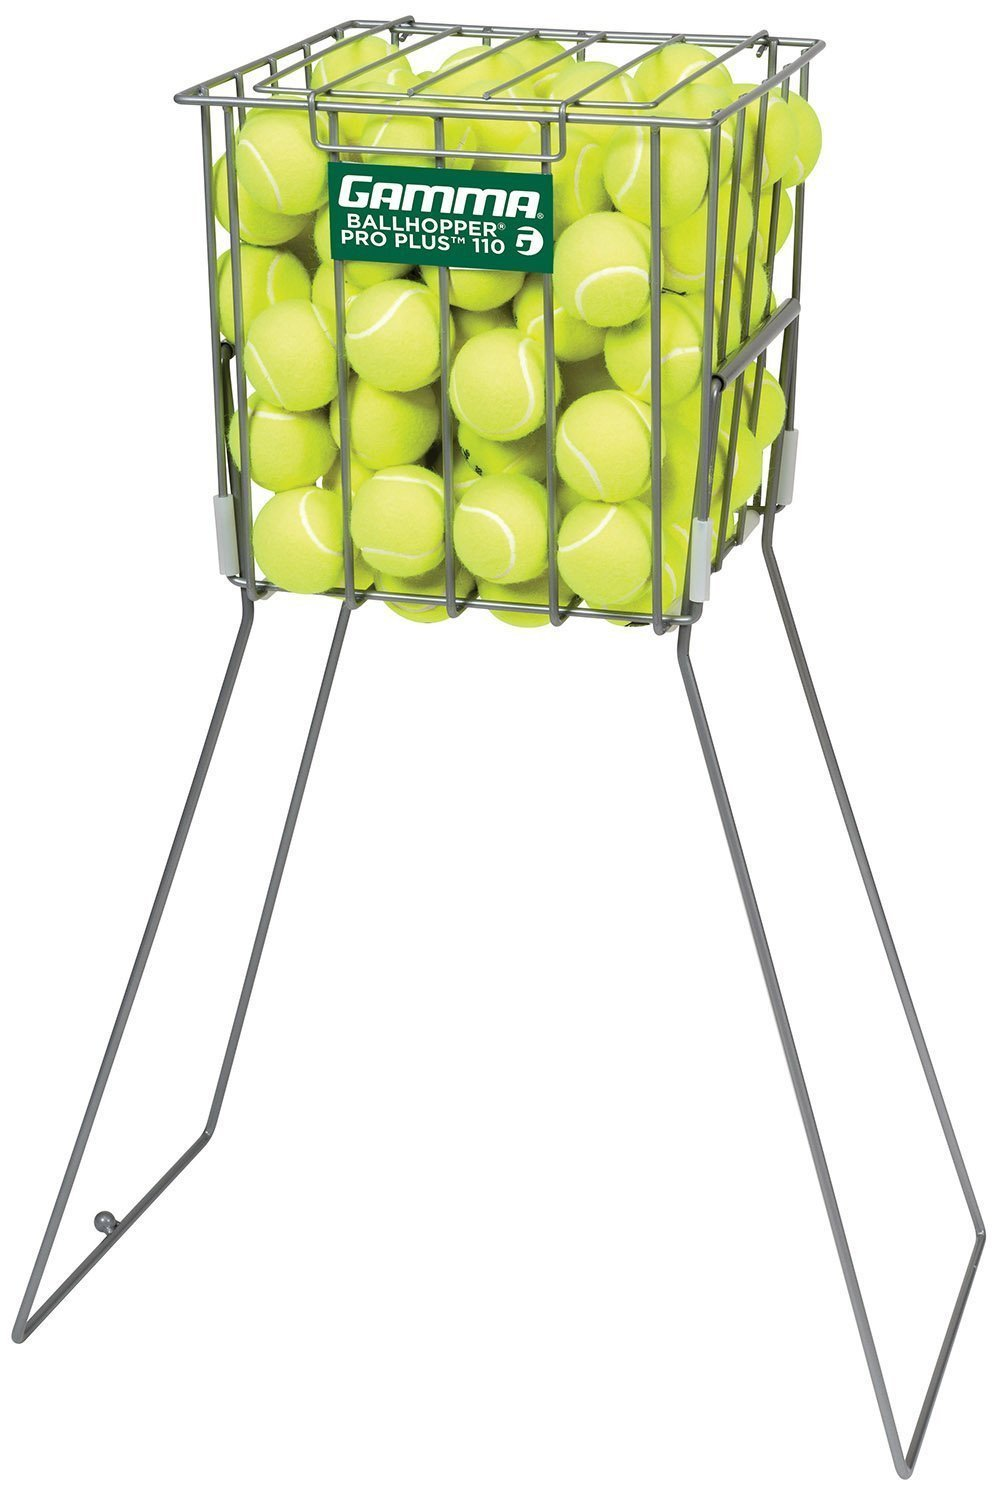 Gamma - Pro Plus 110 Ballhopper-Tennis Accessories-Kunstadt Sports